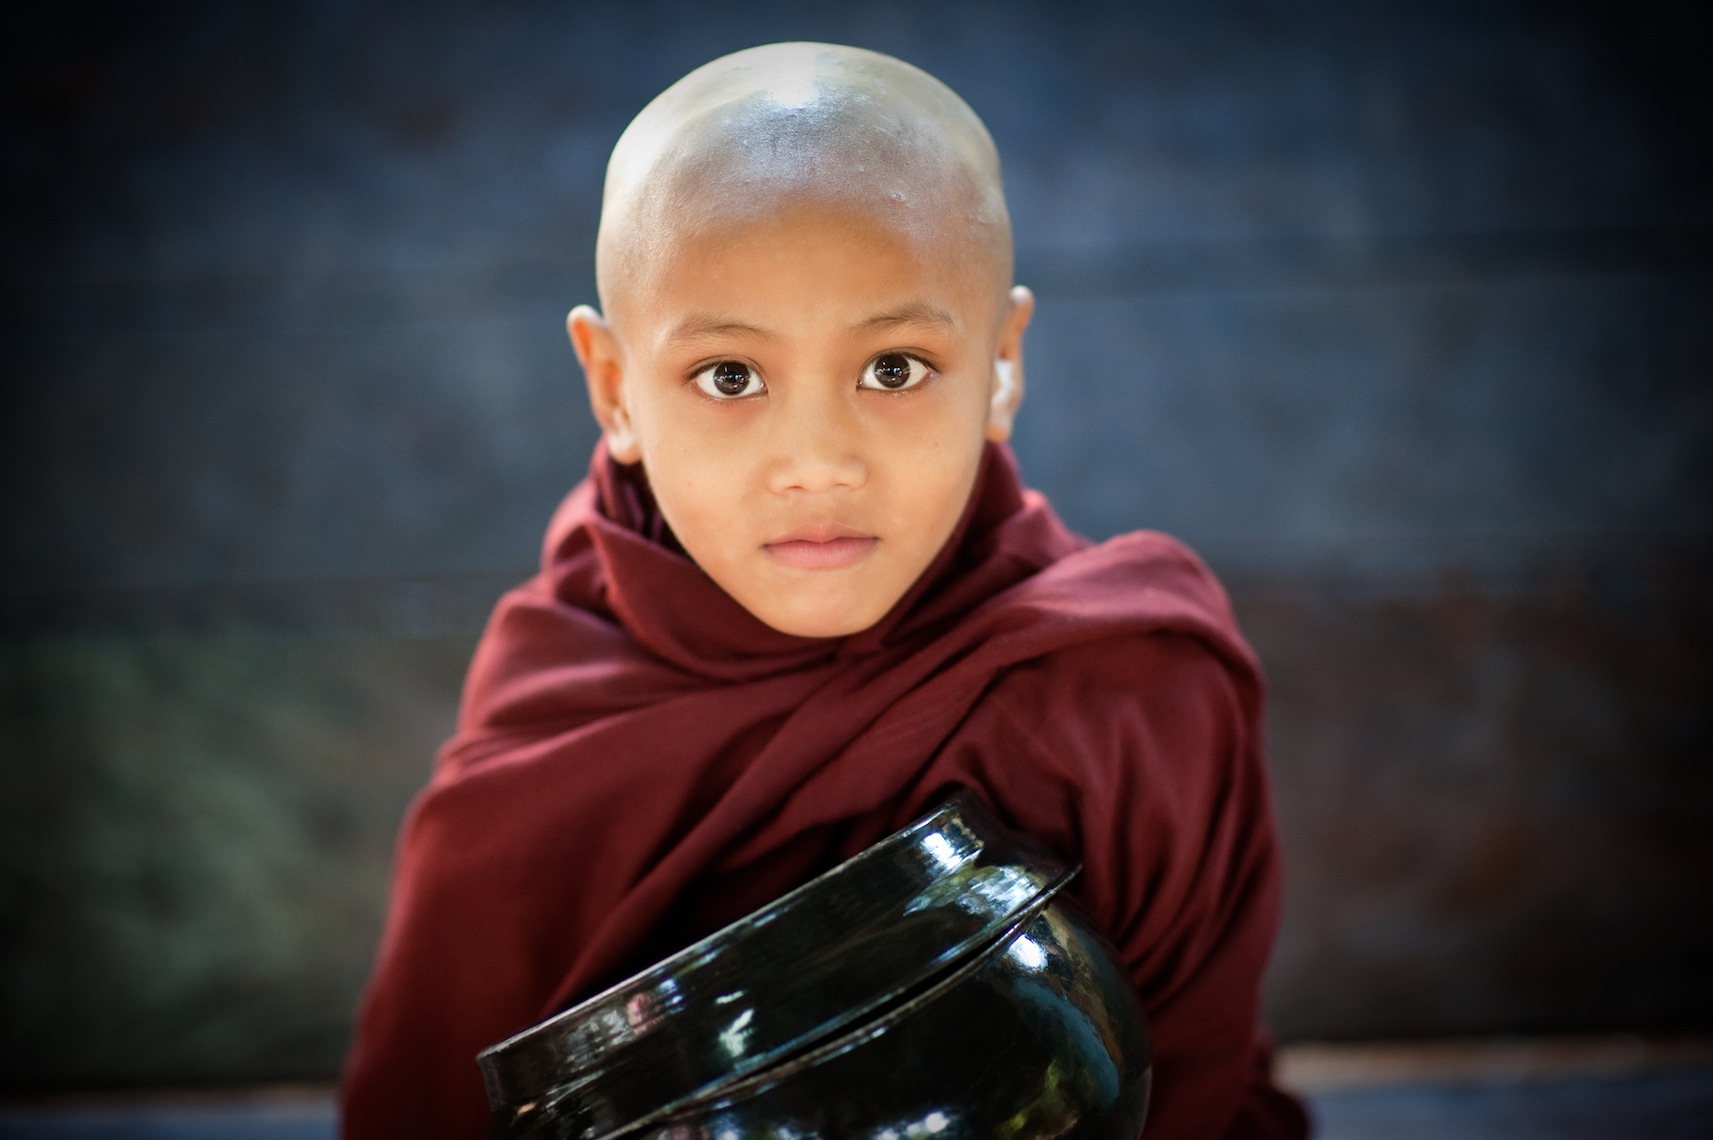 novice monk portrait.jpg